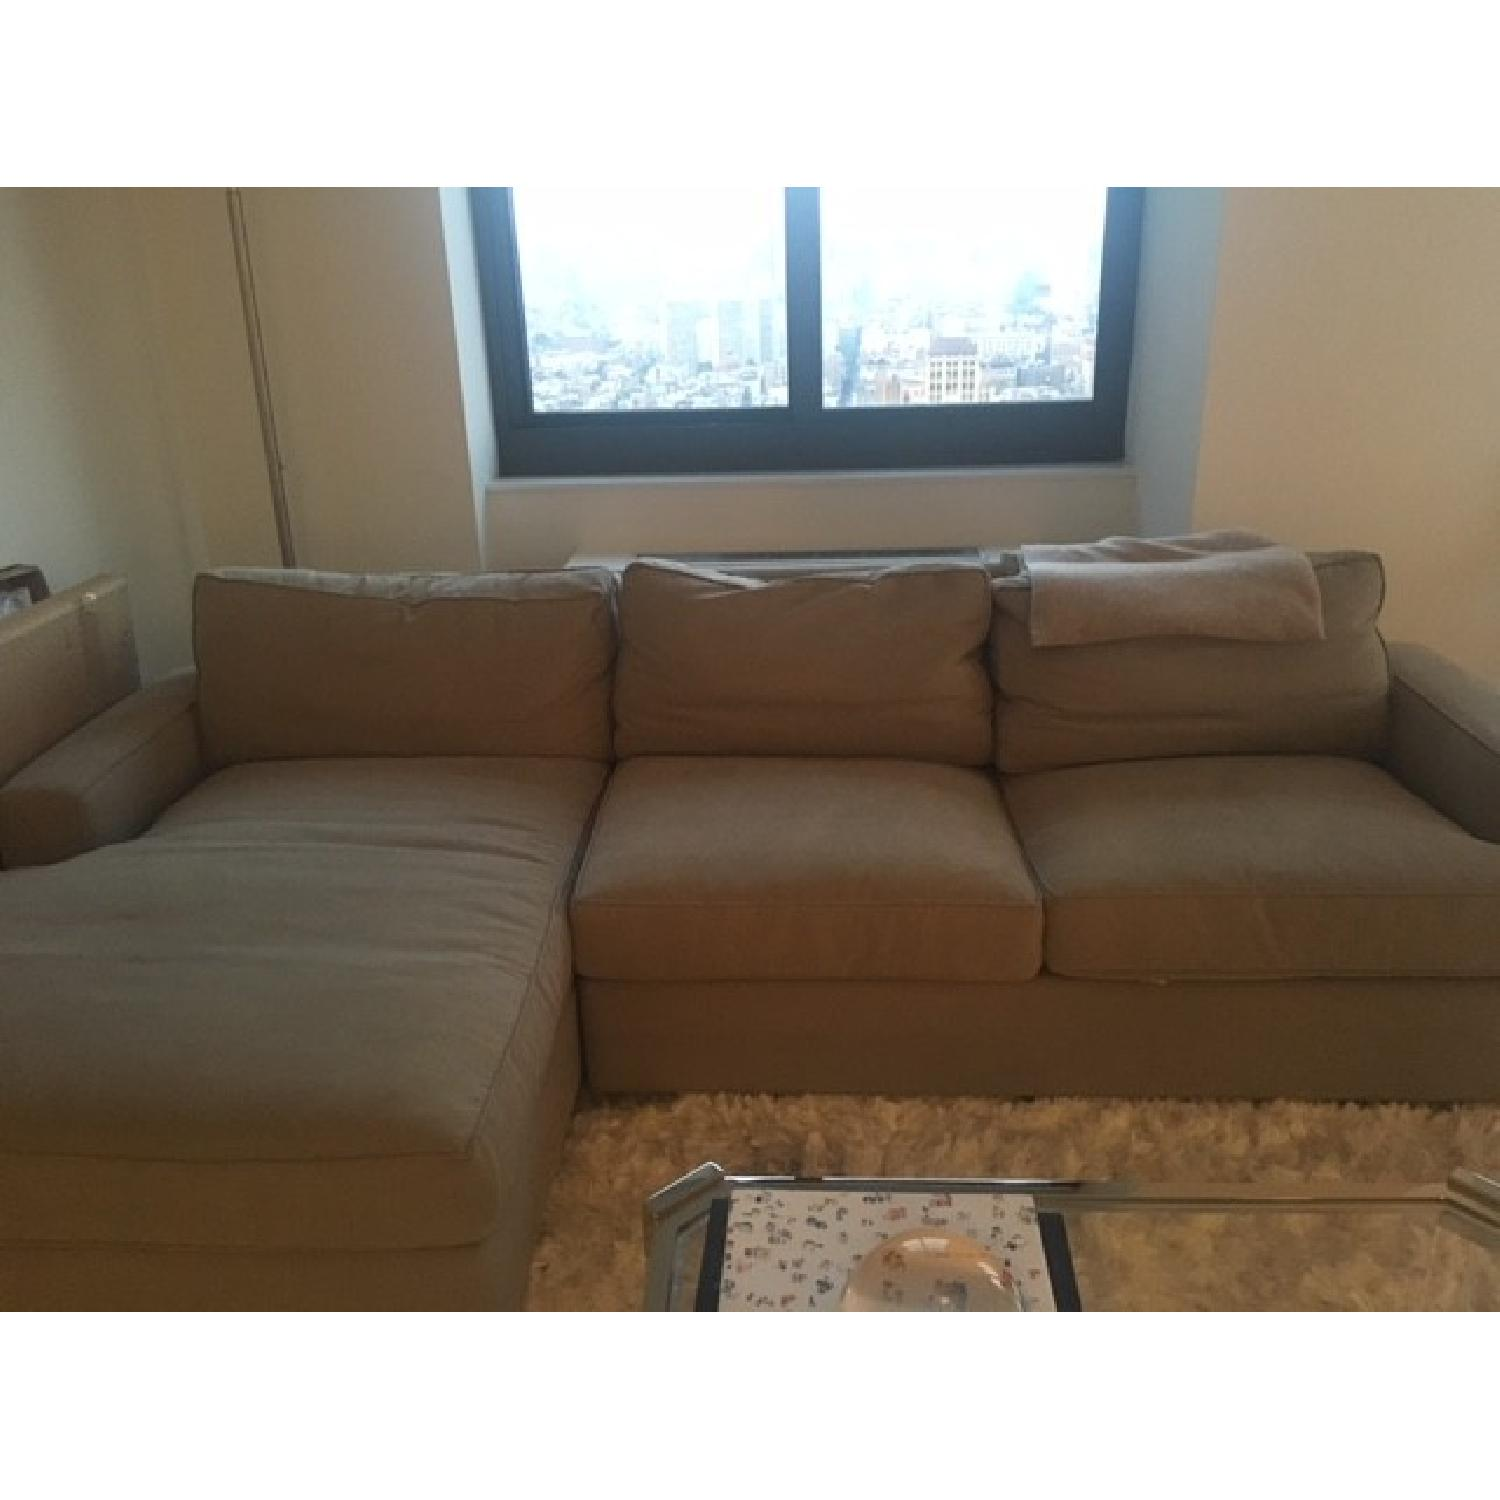 Room & Board Sectional w/ Chaise - image-1